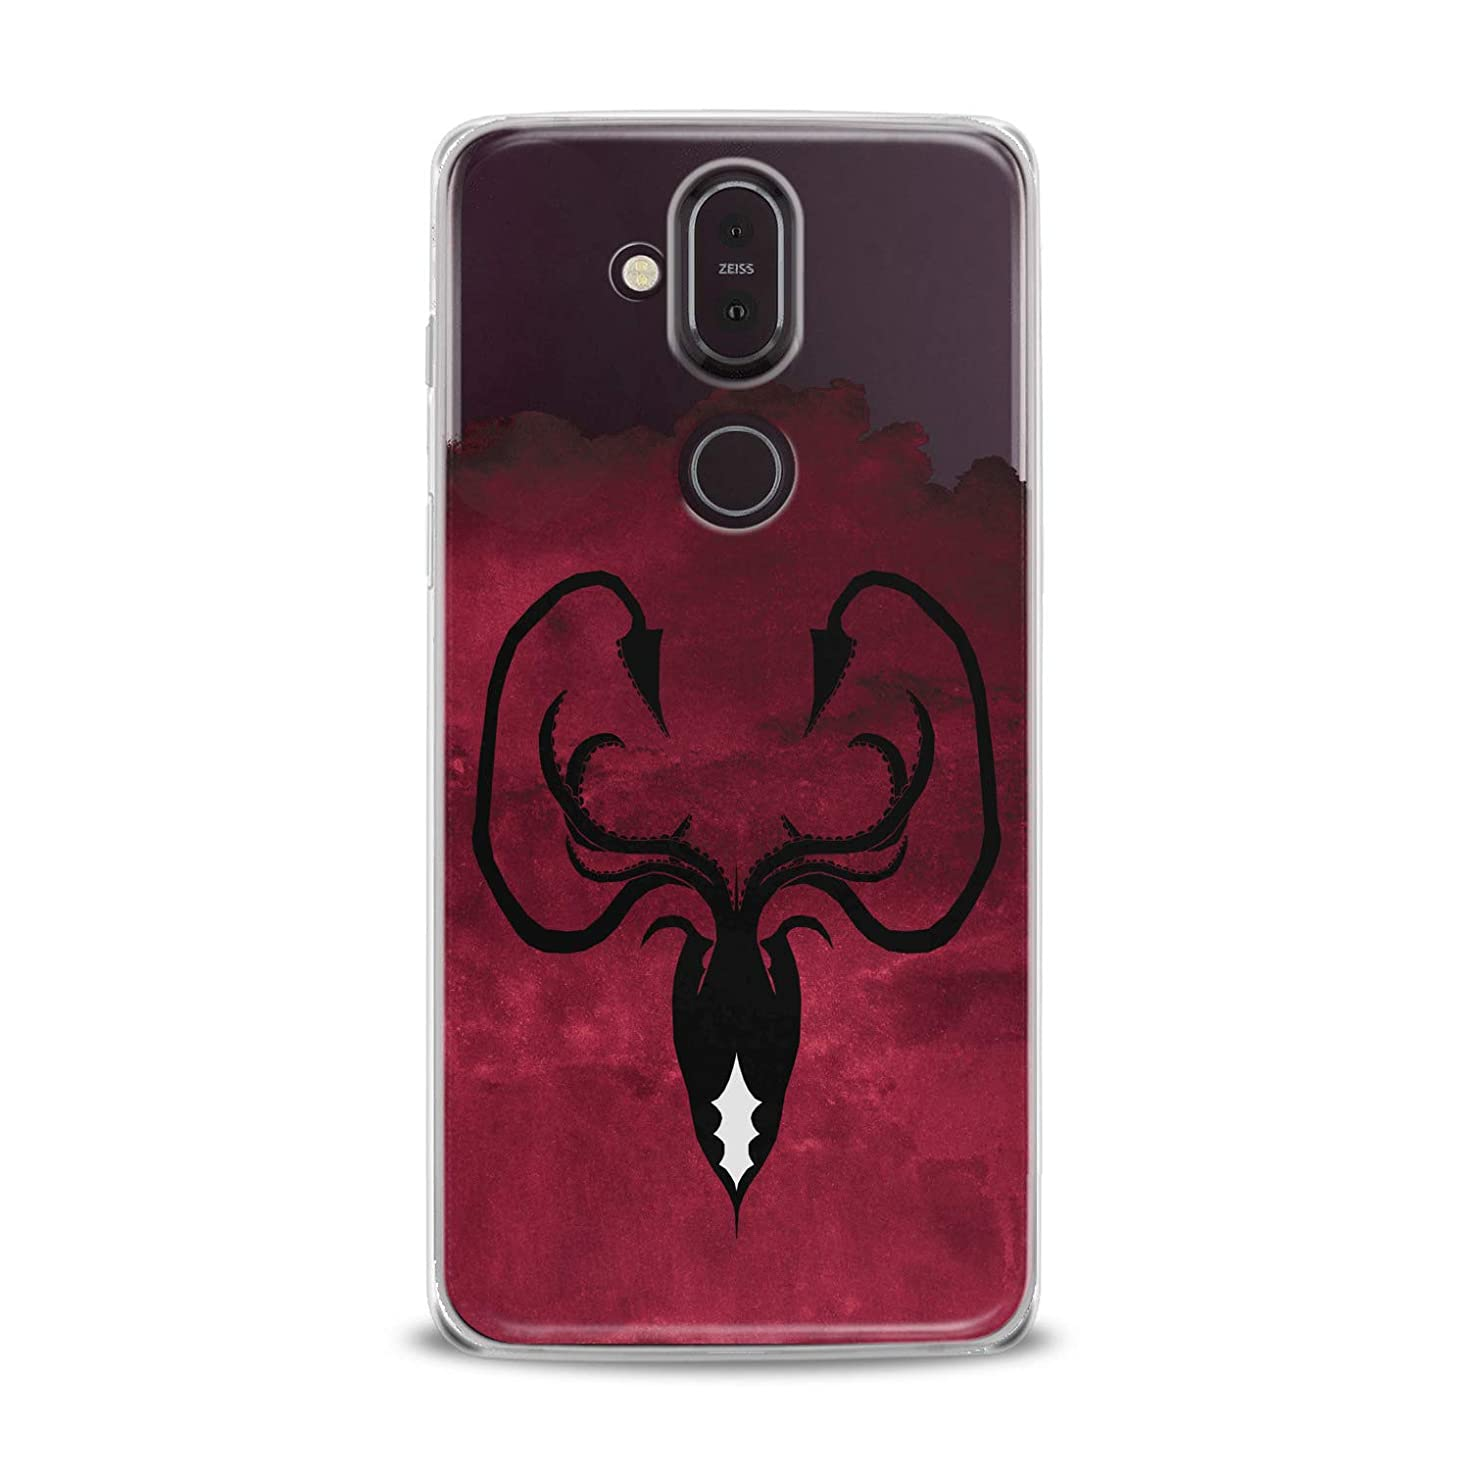 Lex Altern TPU Case for Nokia 9 PureView 8.1 Plus 7.1 6.1 X6 5.1 3.1 Greyjoy Flexible Octopus Symbol Gift Smooth Black Print Slim fit Game of Thrones Cover Soft Clear Red Design Kingdoms Lightweight